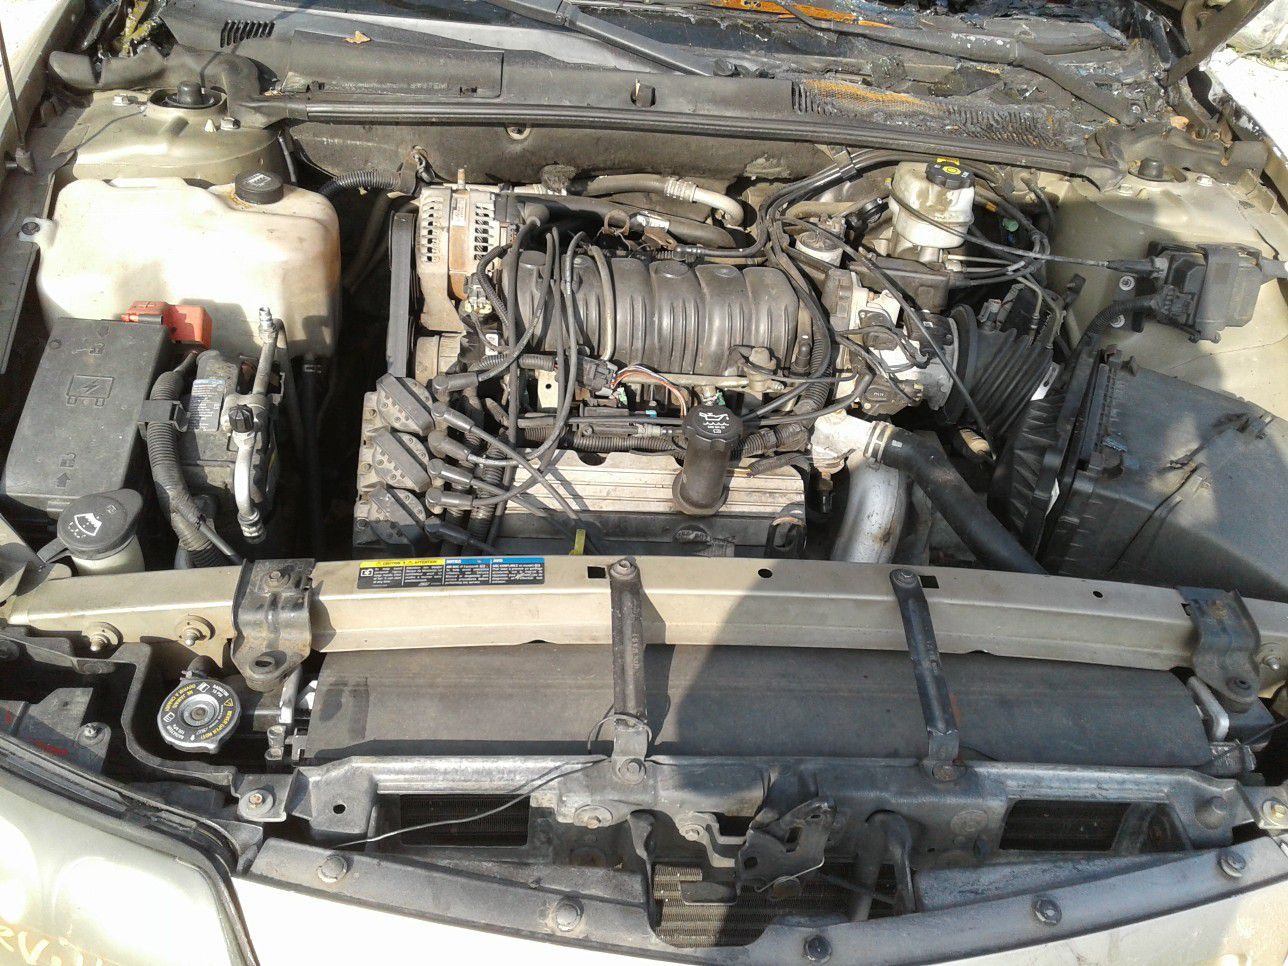 2005 Pontiac Bonneville 3.8 motor for parts only new inventory